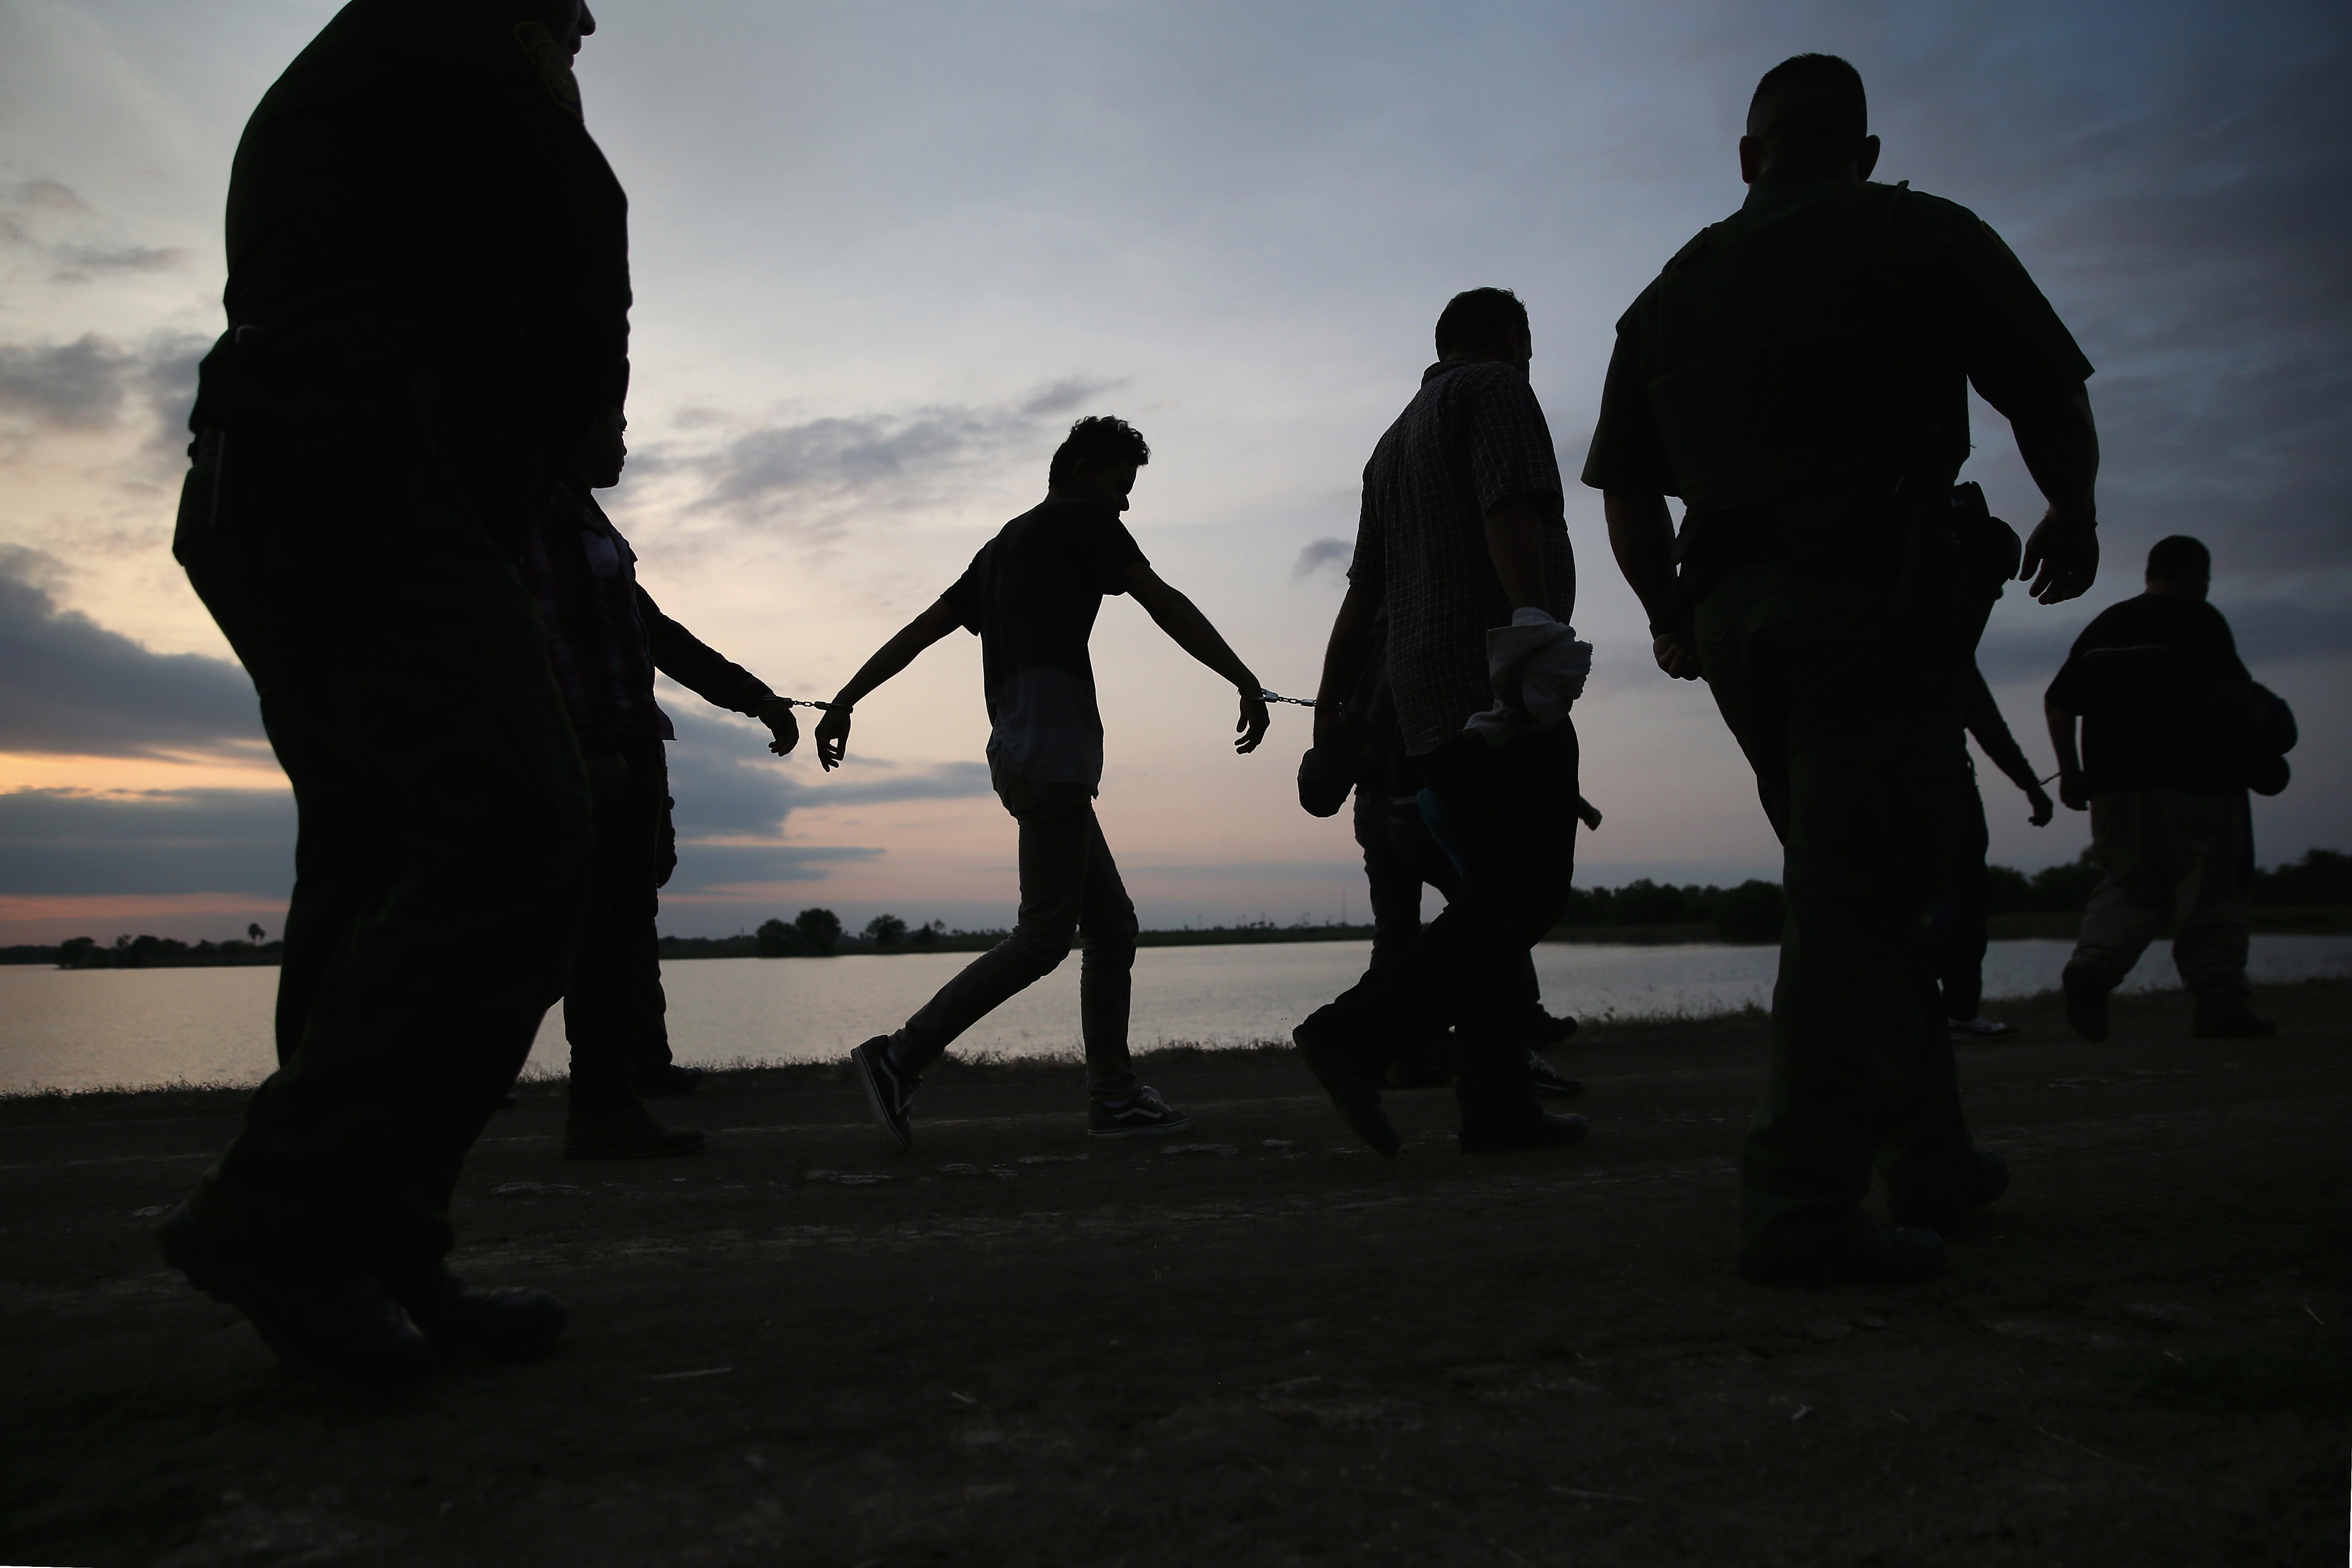 Undocumented immigrants are led after being caught and handcuffed by Border Patrol agents near the U.S.-Mexico border in Weslaco, Texas on April 13, 2016.